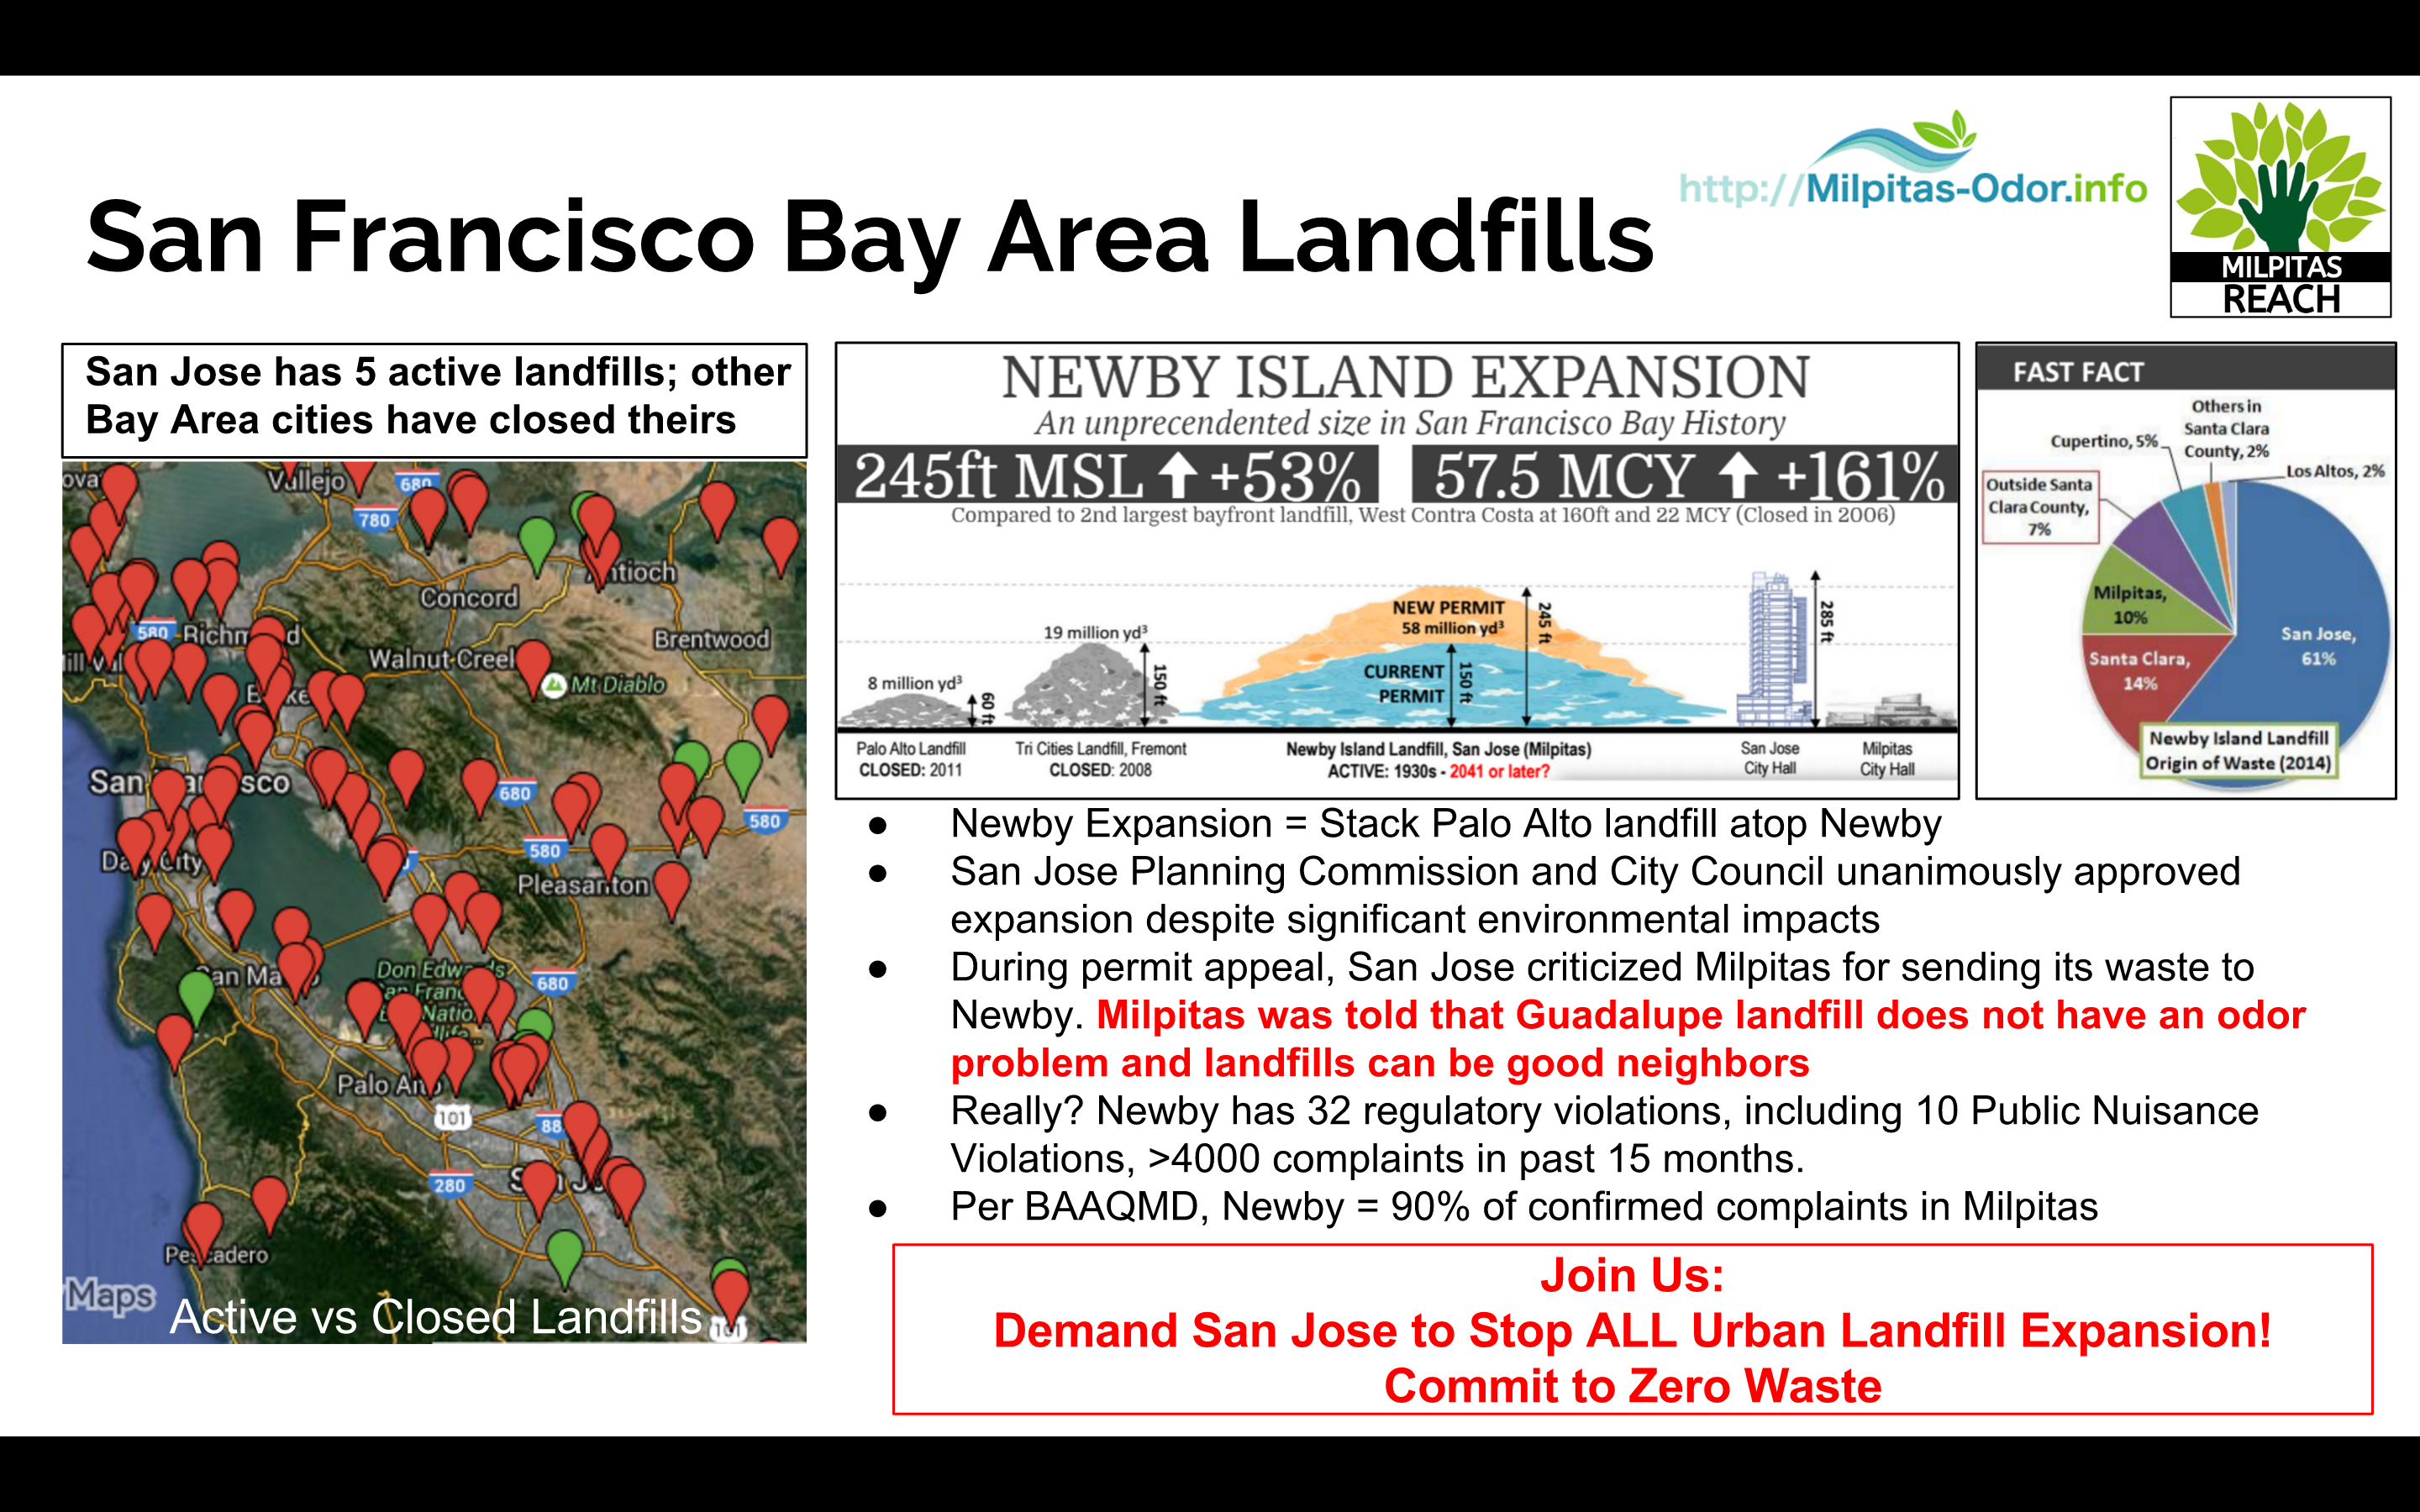 SF Bay Area Landfills Info